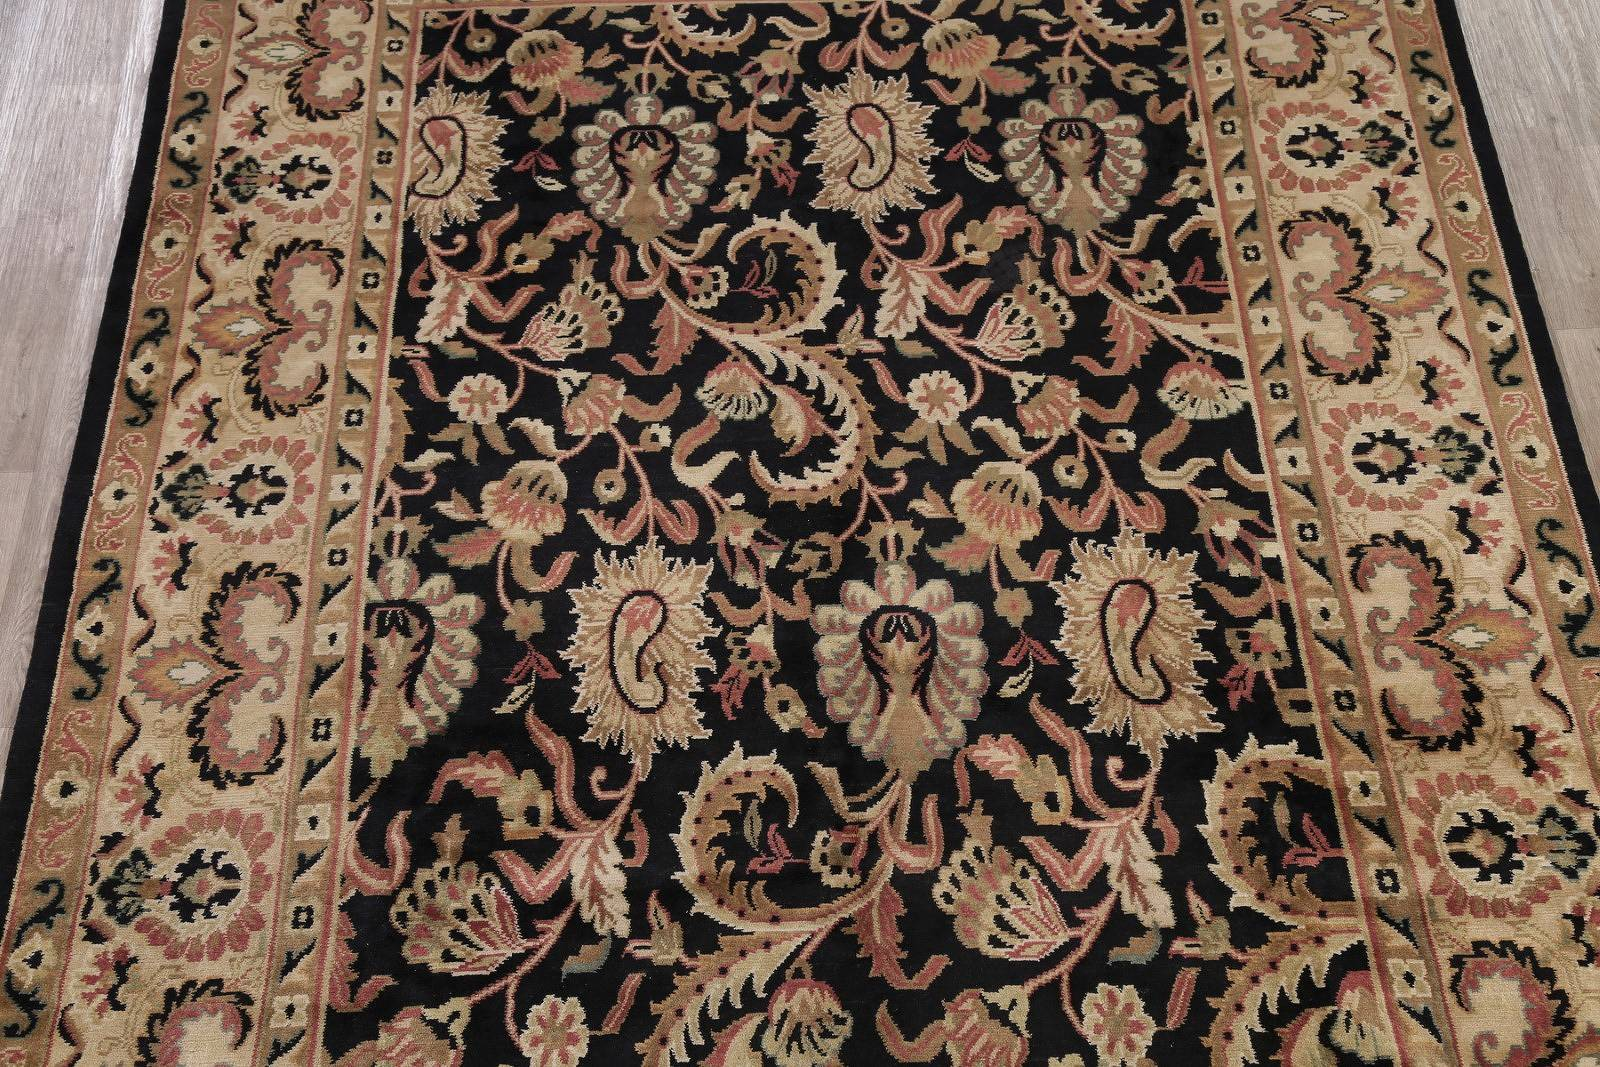 Floral Black Agra Indian Oriental Hand-Knotted Area Rug Wool 9x12